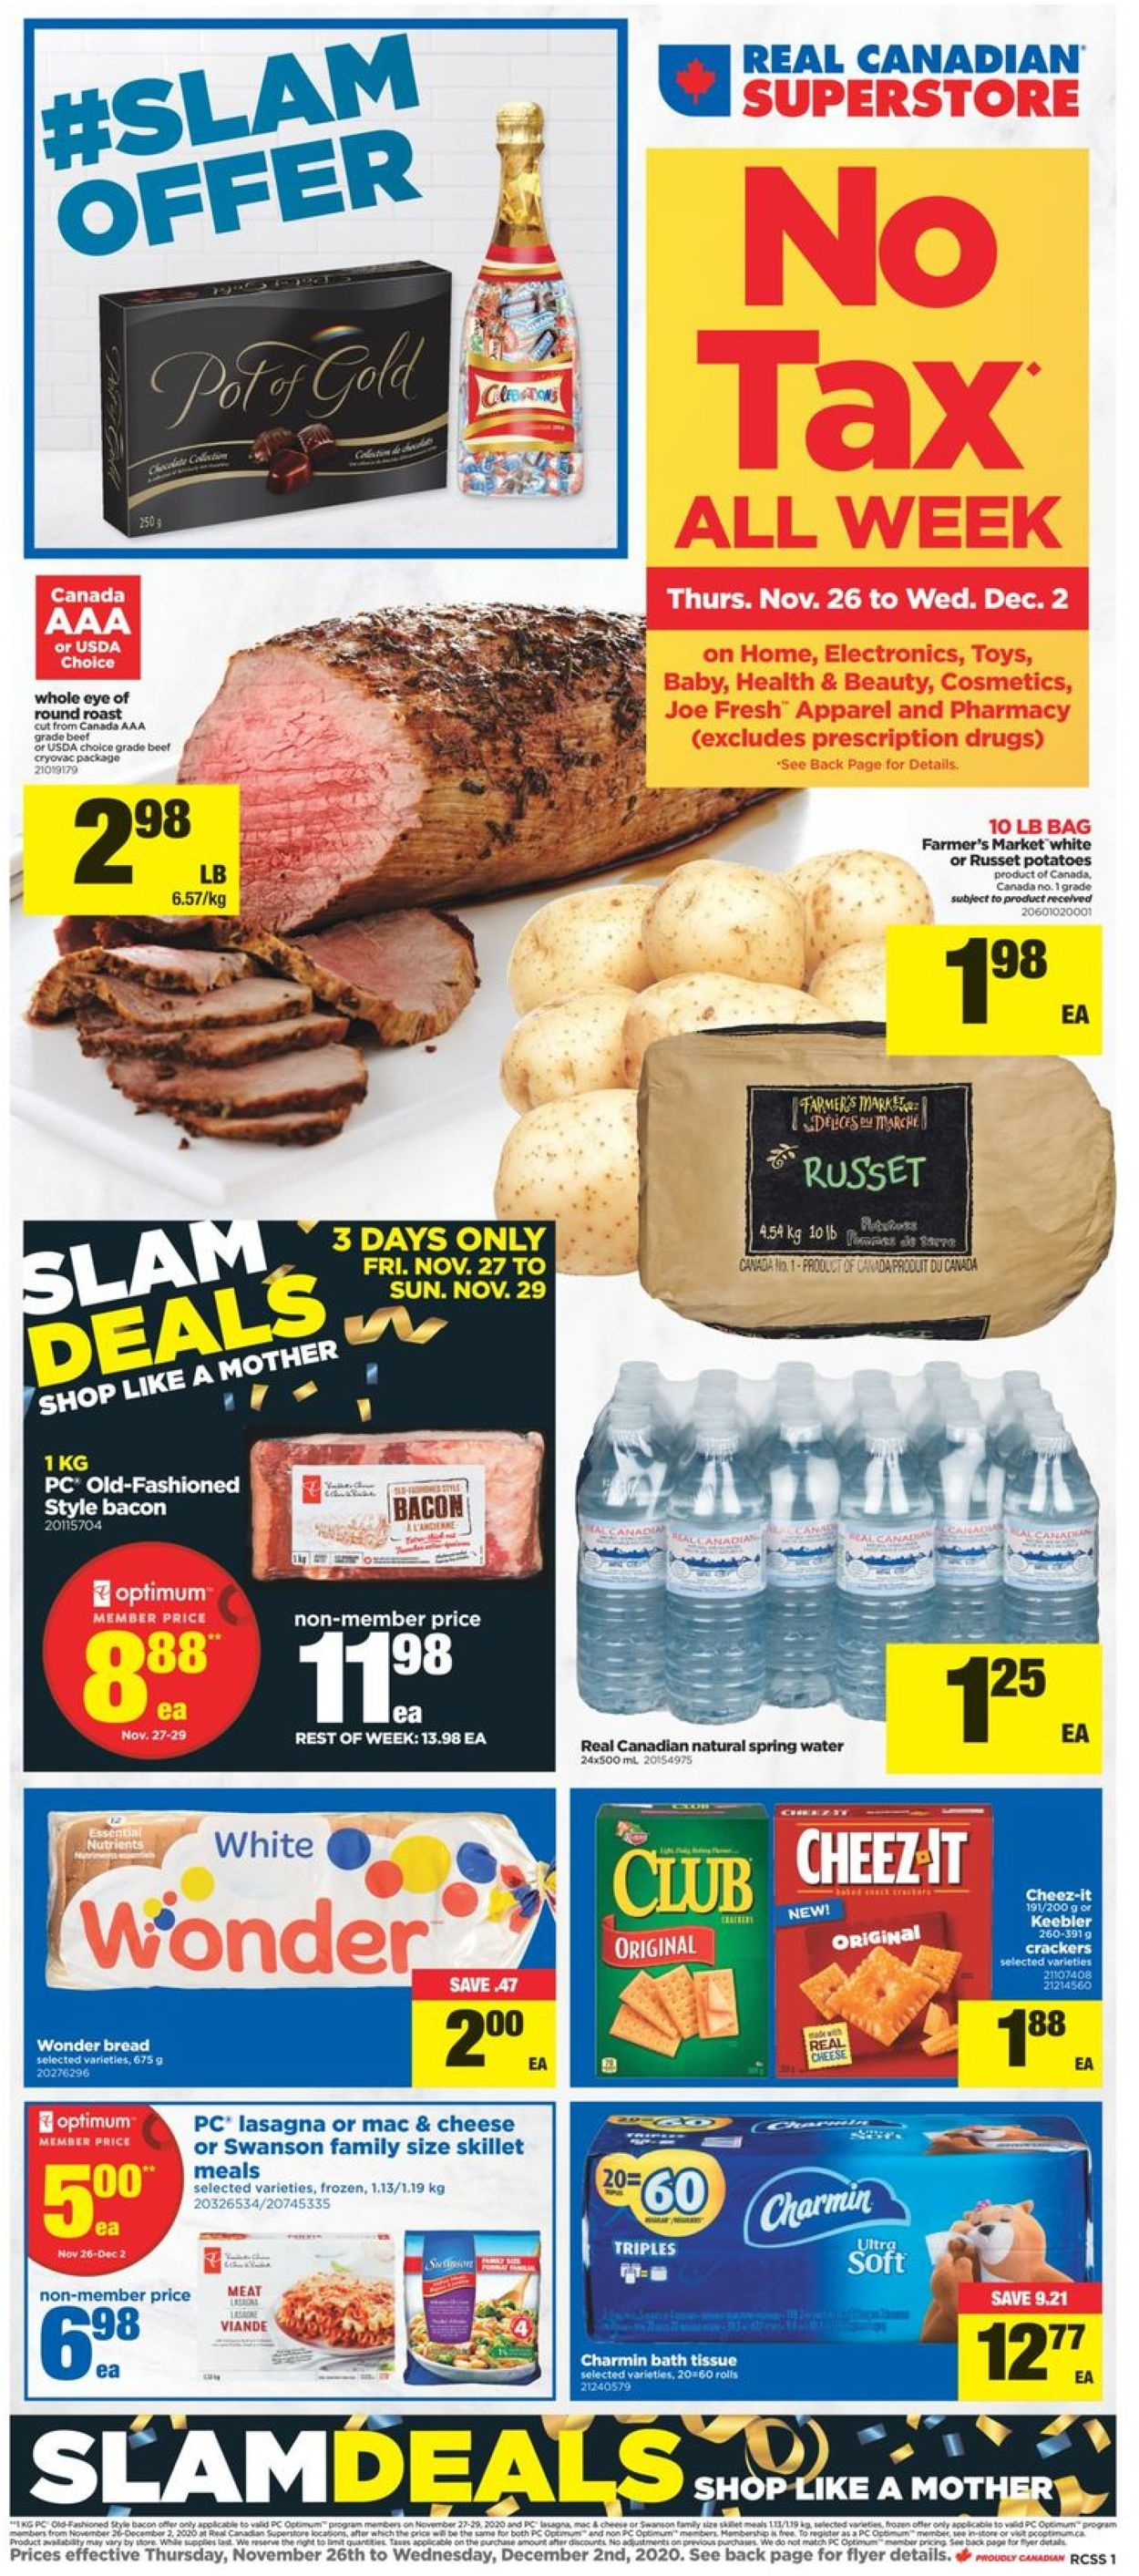 Real Canadian Superstore - Black Friday 2020 Flyer - 11/26-12/02/2020